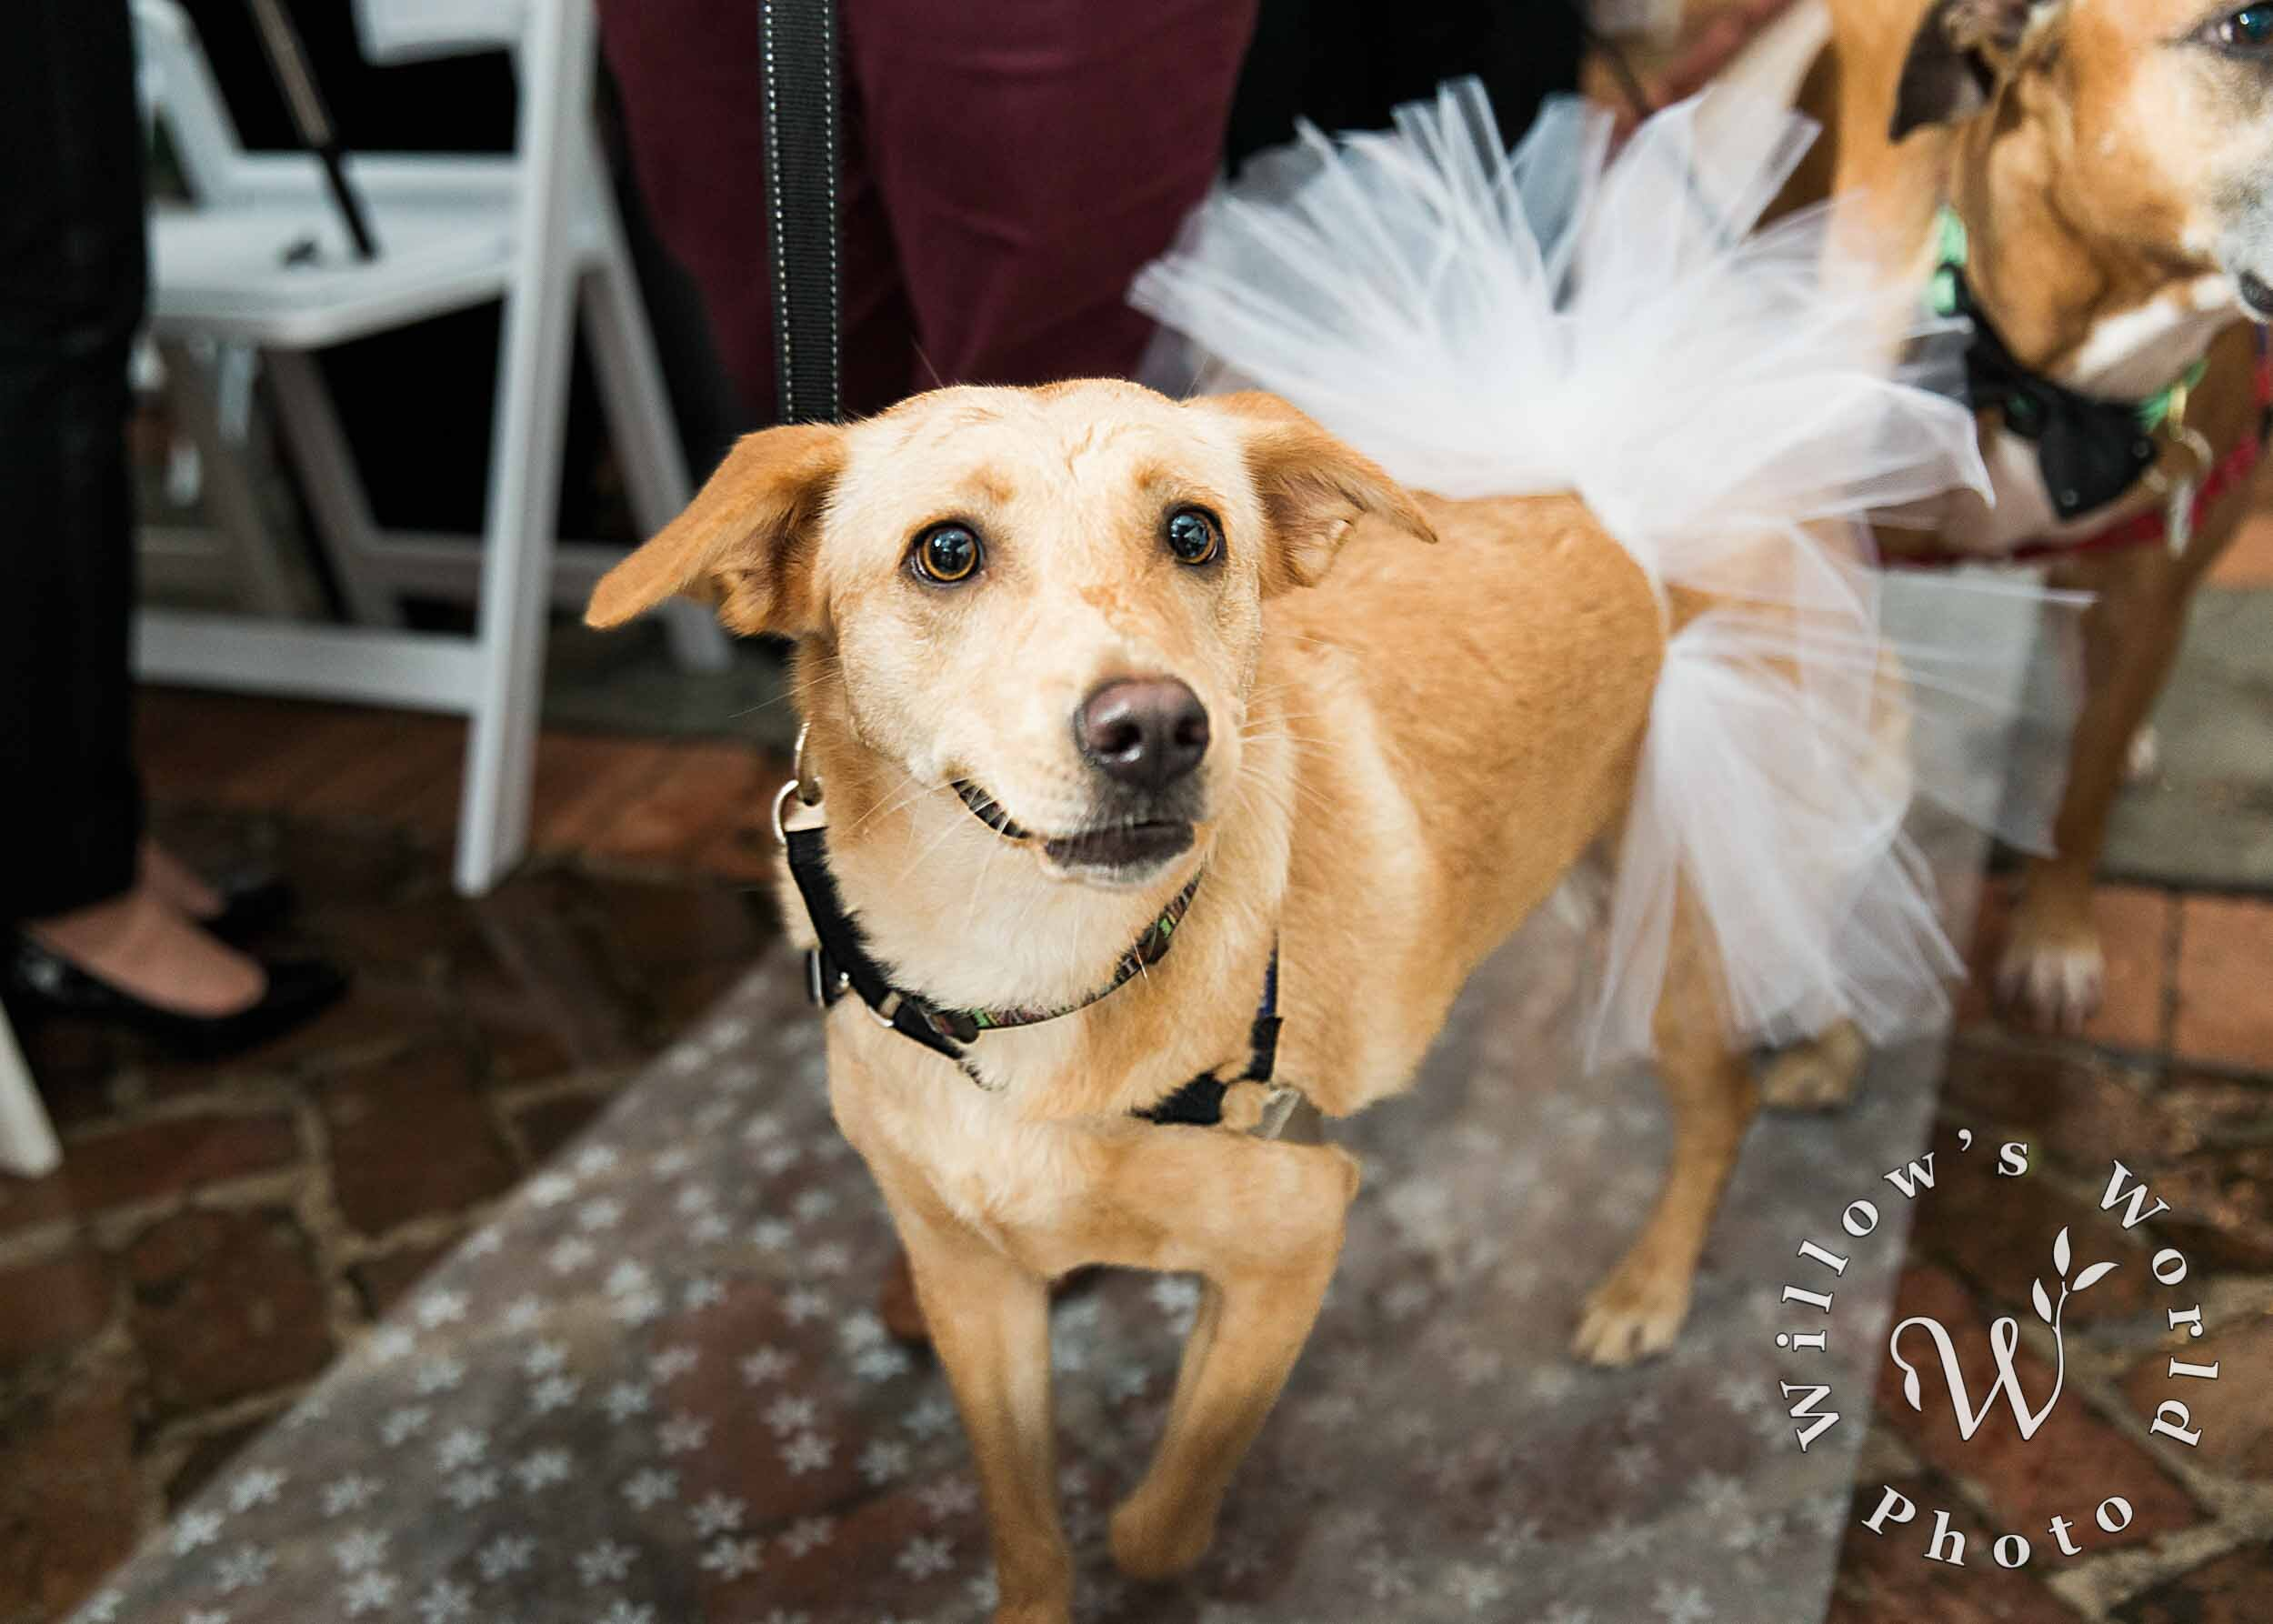 26-Degas-House-New-Orleans-Wedding-Ceremony-Dog-Willows-World-Photo.jpg